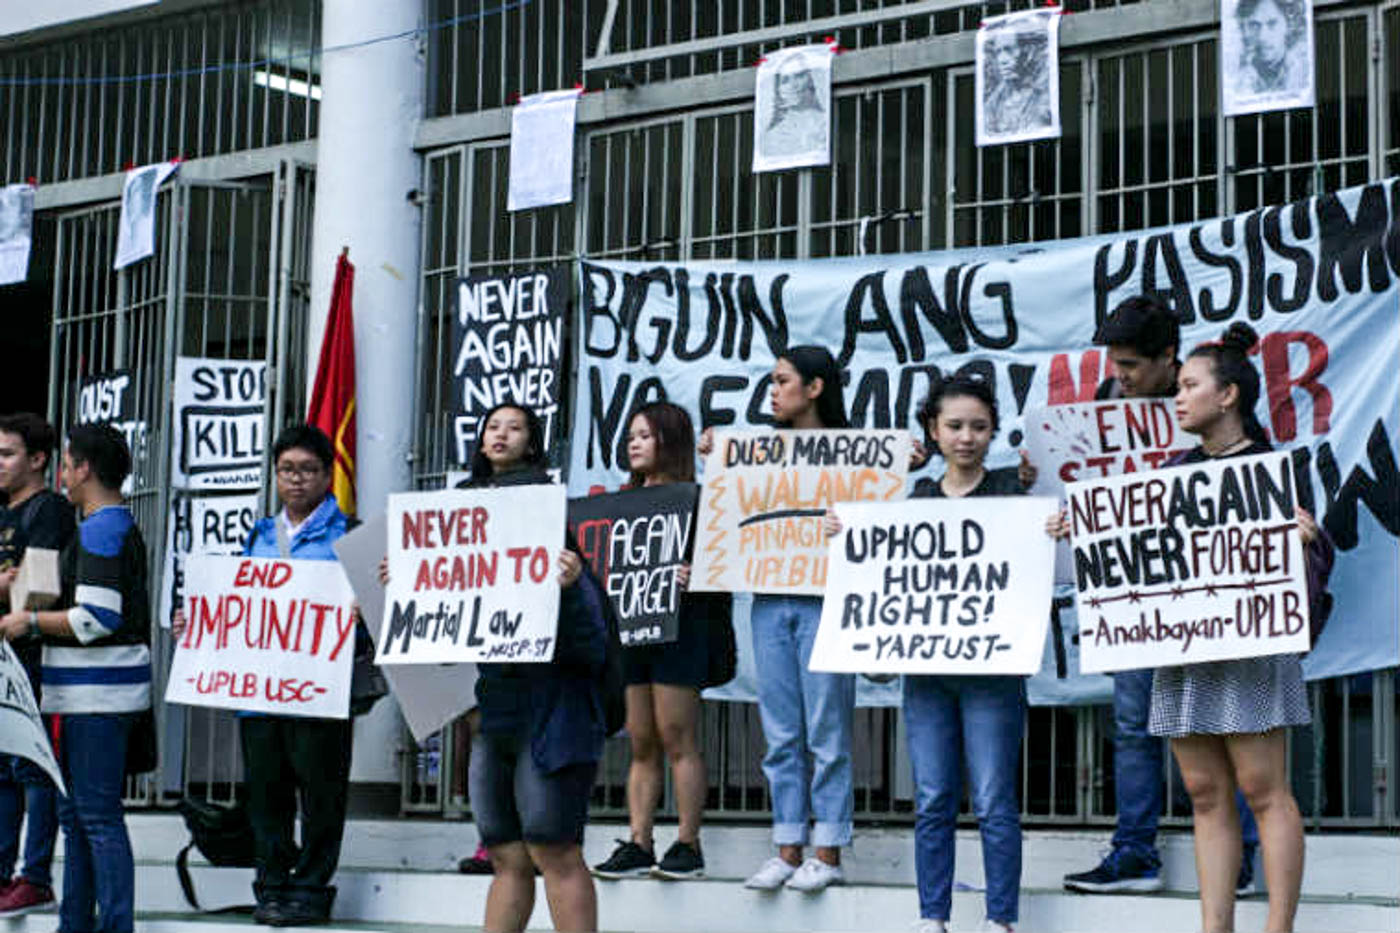 CALABARZON. UPLB students stage a protest at the Carabao Park at the University of the Philippines - Los Baños campus. Photo by Neren Bartolay/Rappler